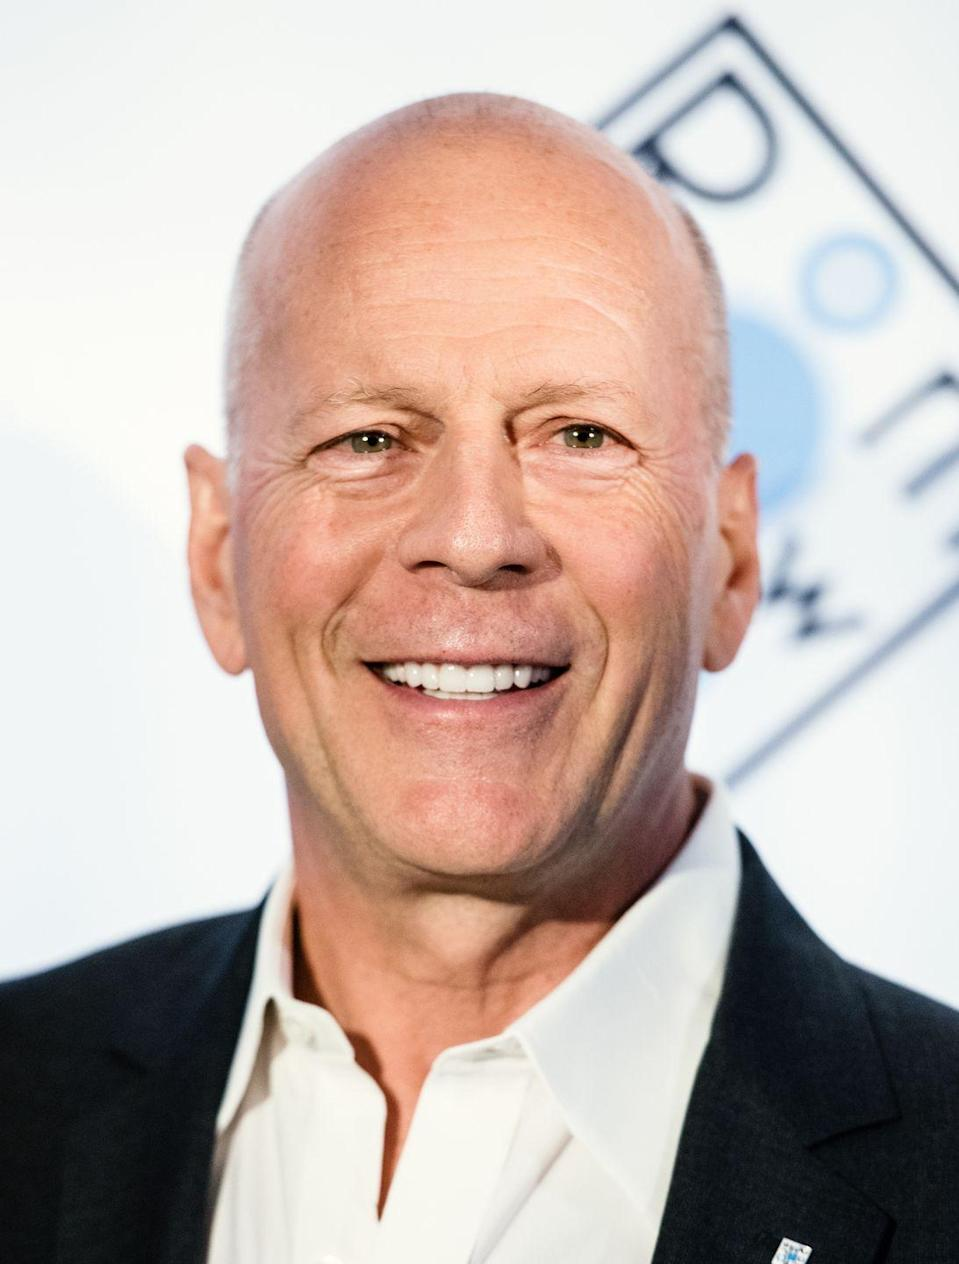 "<p>Though he hasn't admitted which film he hates exactly, when <a href=""https://pagesix.com/2010/10/20/which-movies-does-bruce-willis-regret-making/"" rel=""nofollow noopener"" target=""_blank"" data-ylk=""slk:asked"" class=""link rapid-noclick-resp"">asked</a> if he regrets making any of his 60-plus films Willis revealed, ""about a dozen. I'd love to strike them off the list."" He also <a href=""http://www.telegraph.co.uk/culture/film/film-news/10240313/Bruce-Willis-Im-bored-of-making-action-movies.html"" rel=""nofollow noopener"" target=""_blank"" data-ylk=""slk:admitted"" class=""link rapid-noclick-resp"">admitted</a> he's ""bored of making action movies."" </p>"